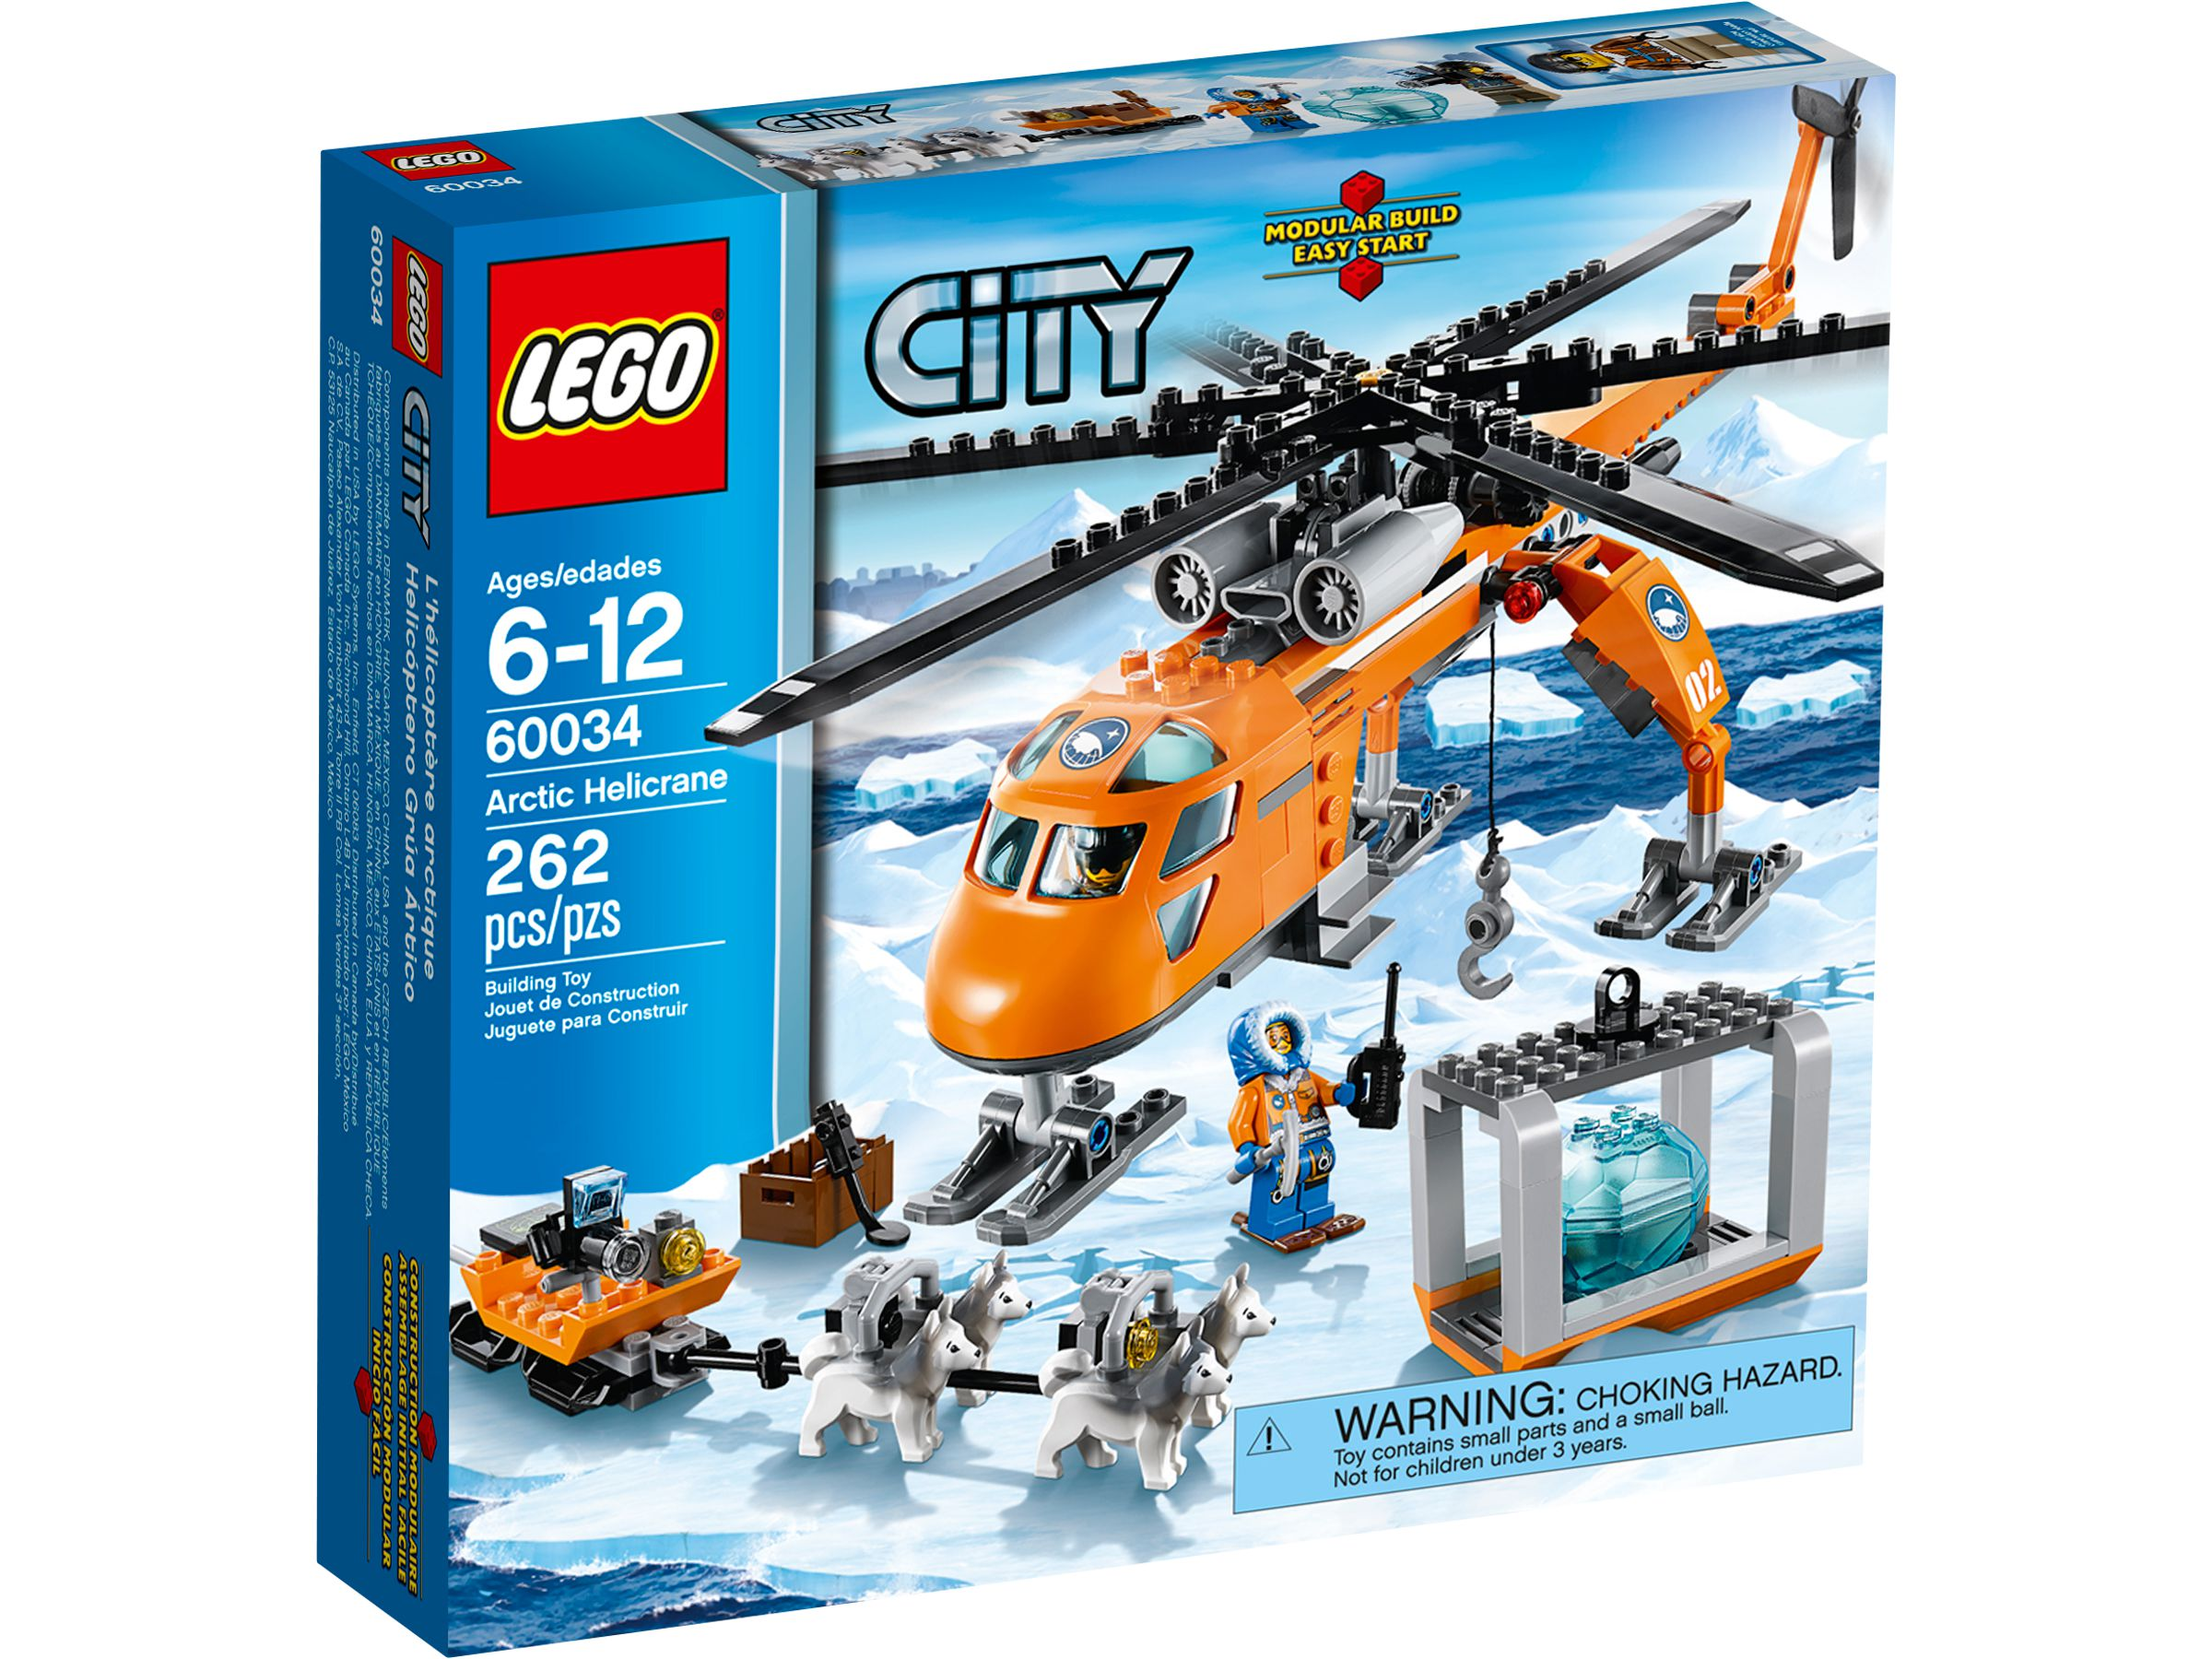 lego 60034 arktis helikopter mit hundeschlitten city 2014 arctic helicrane brickmerge. Black Bedroom Furniture Sets. Home Design Ideas